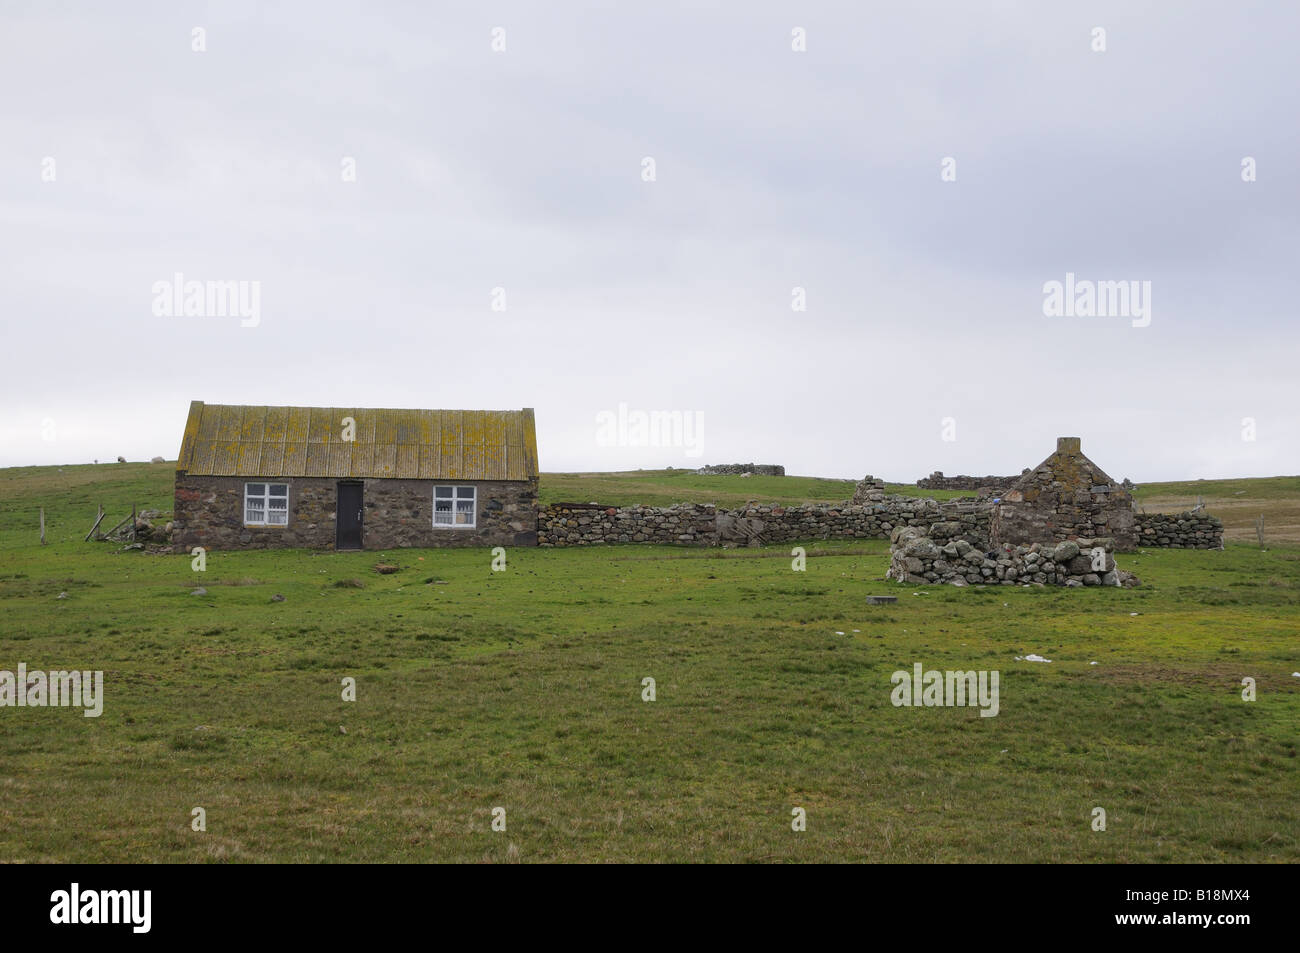 Shetland croft. In Shetland, people use stones as their primary building material. There are almost no trees. - Stock Image